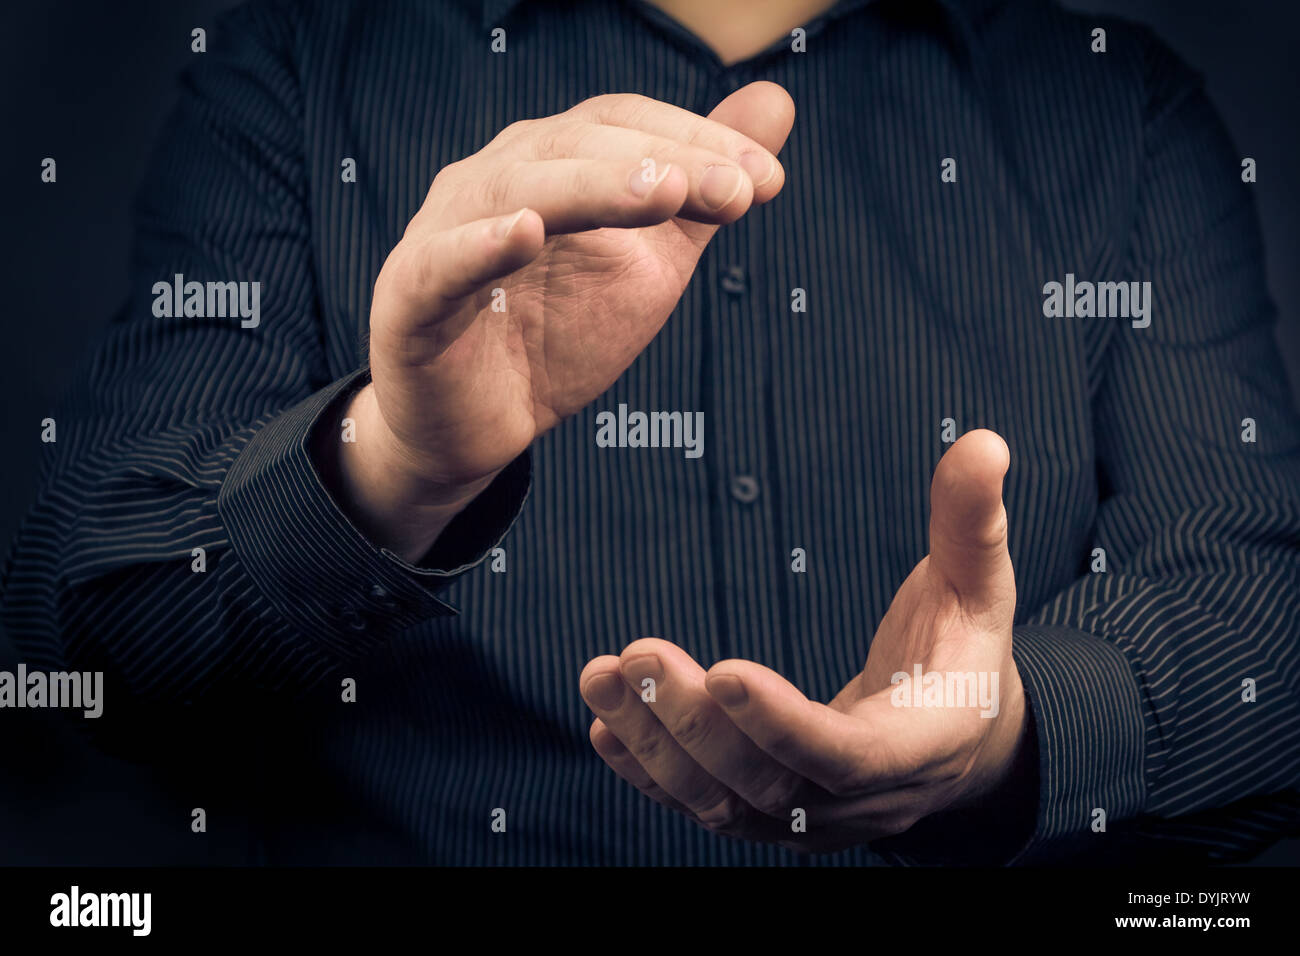 Man expressing their appreciation by clapping hands - Stock Image